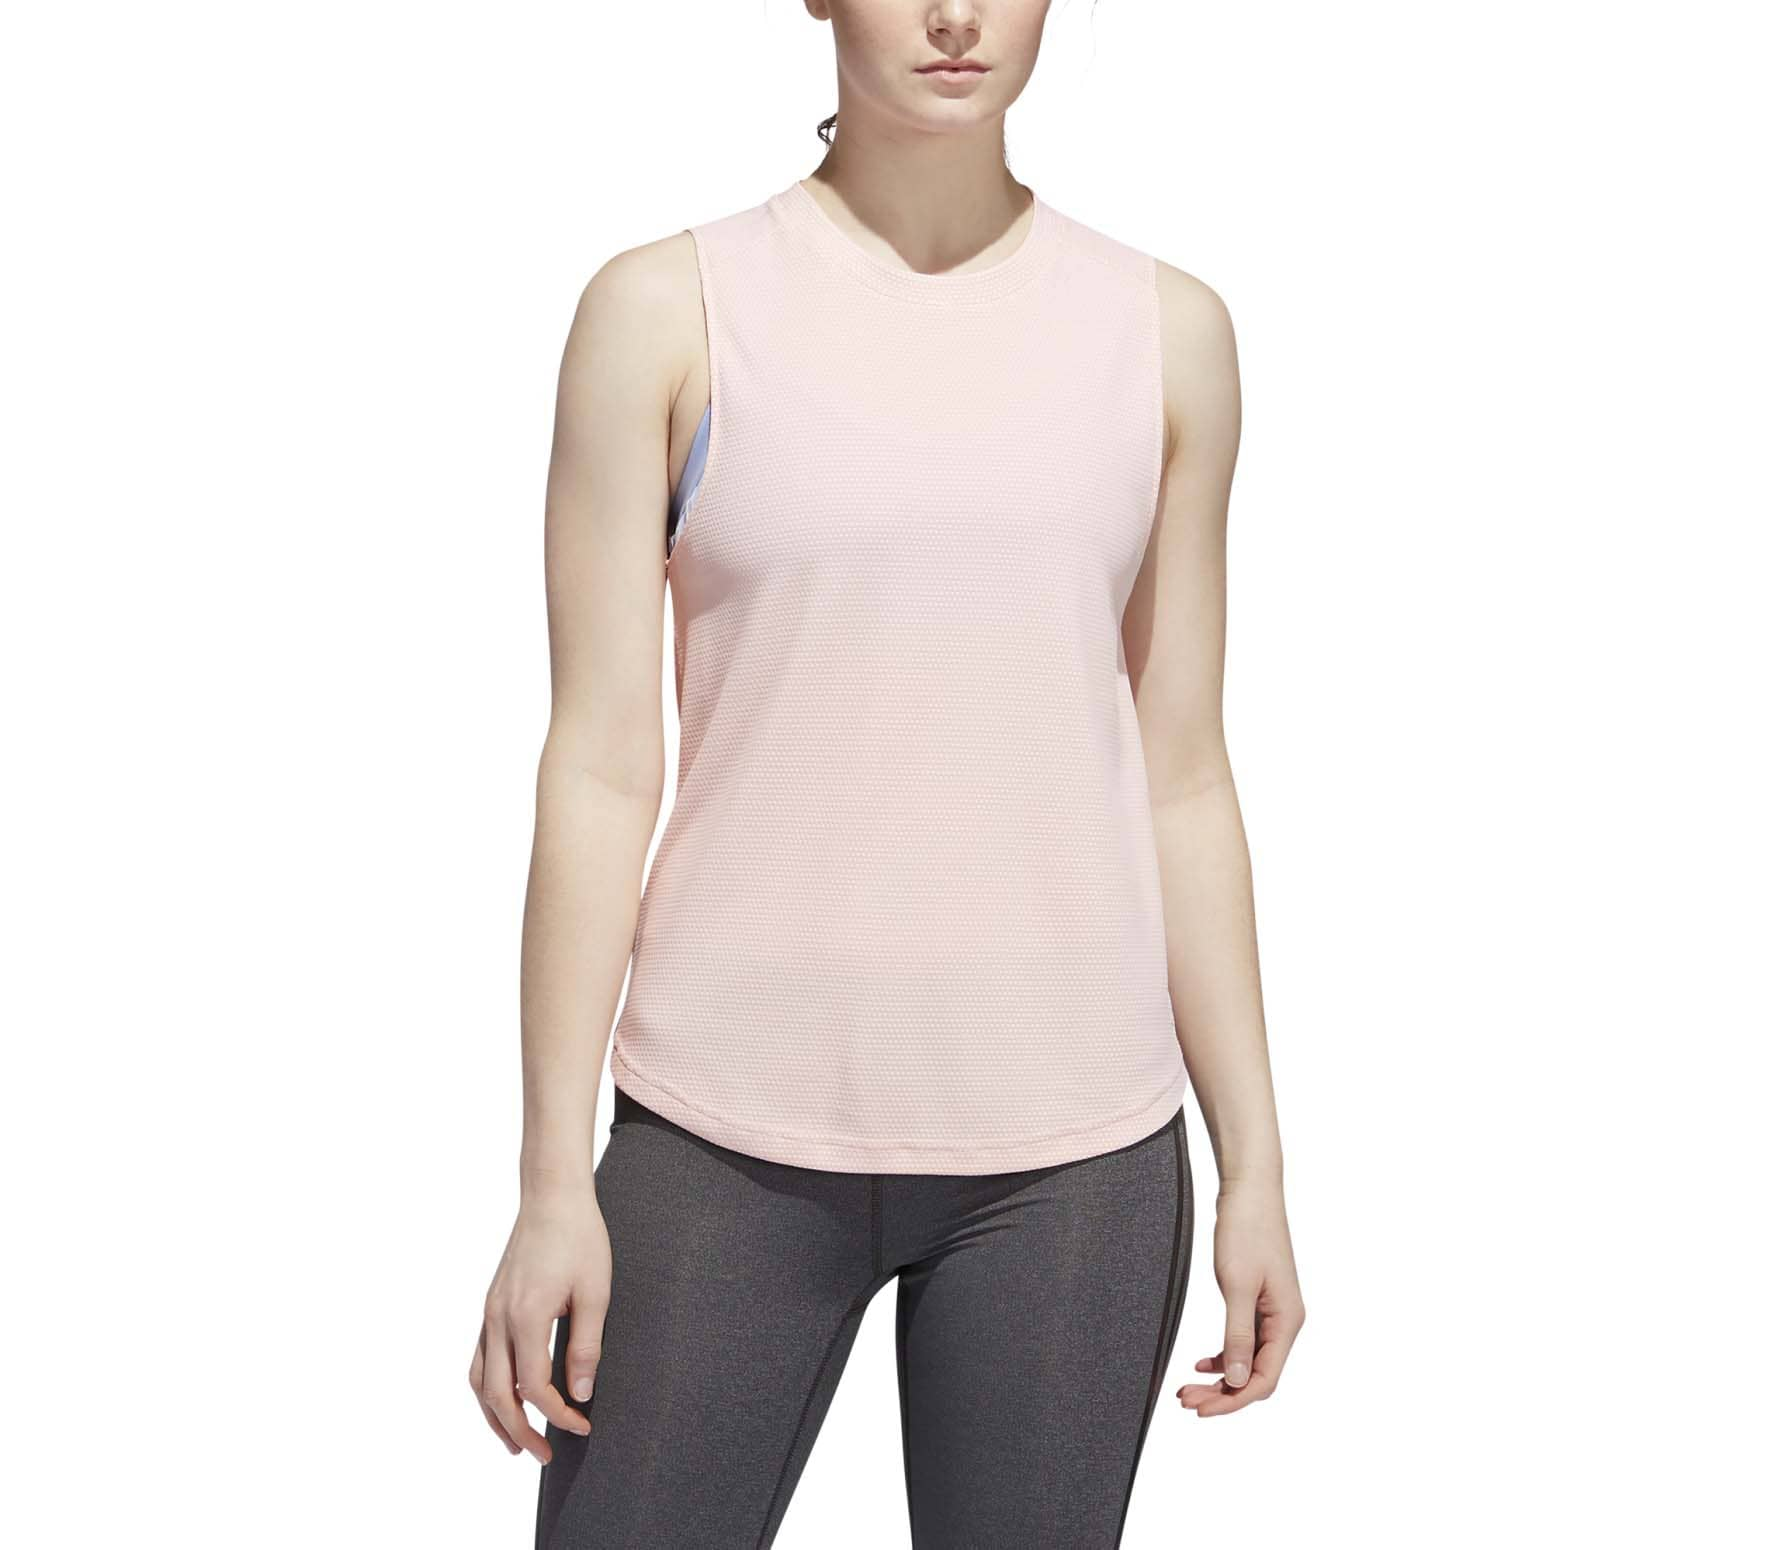 adidas Performance Women Training Tank Top pink